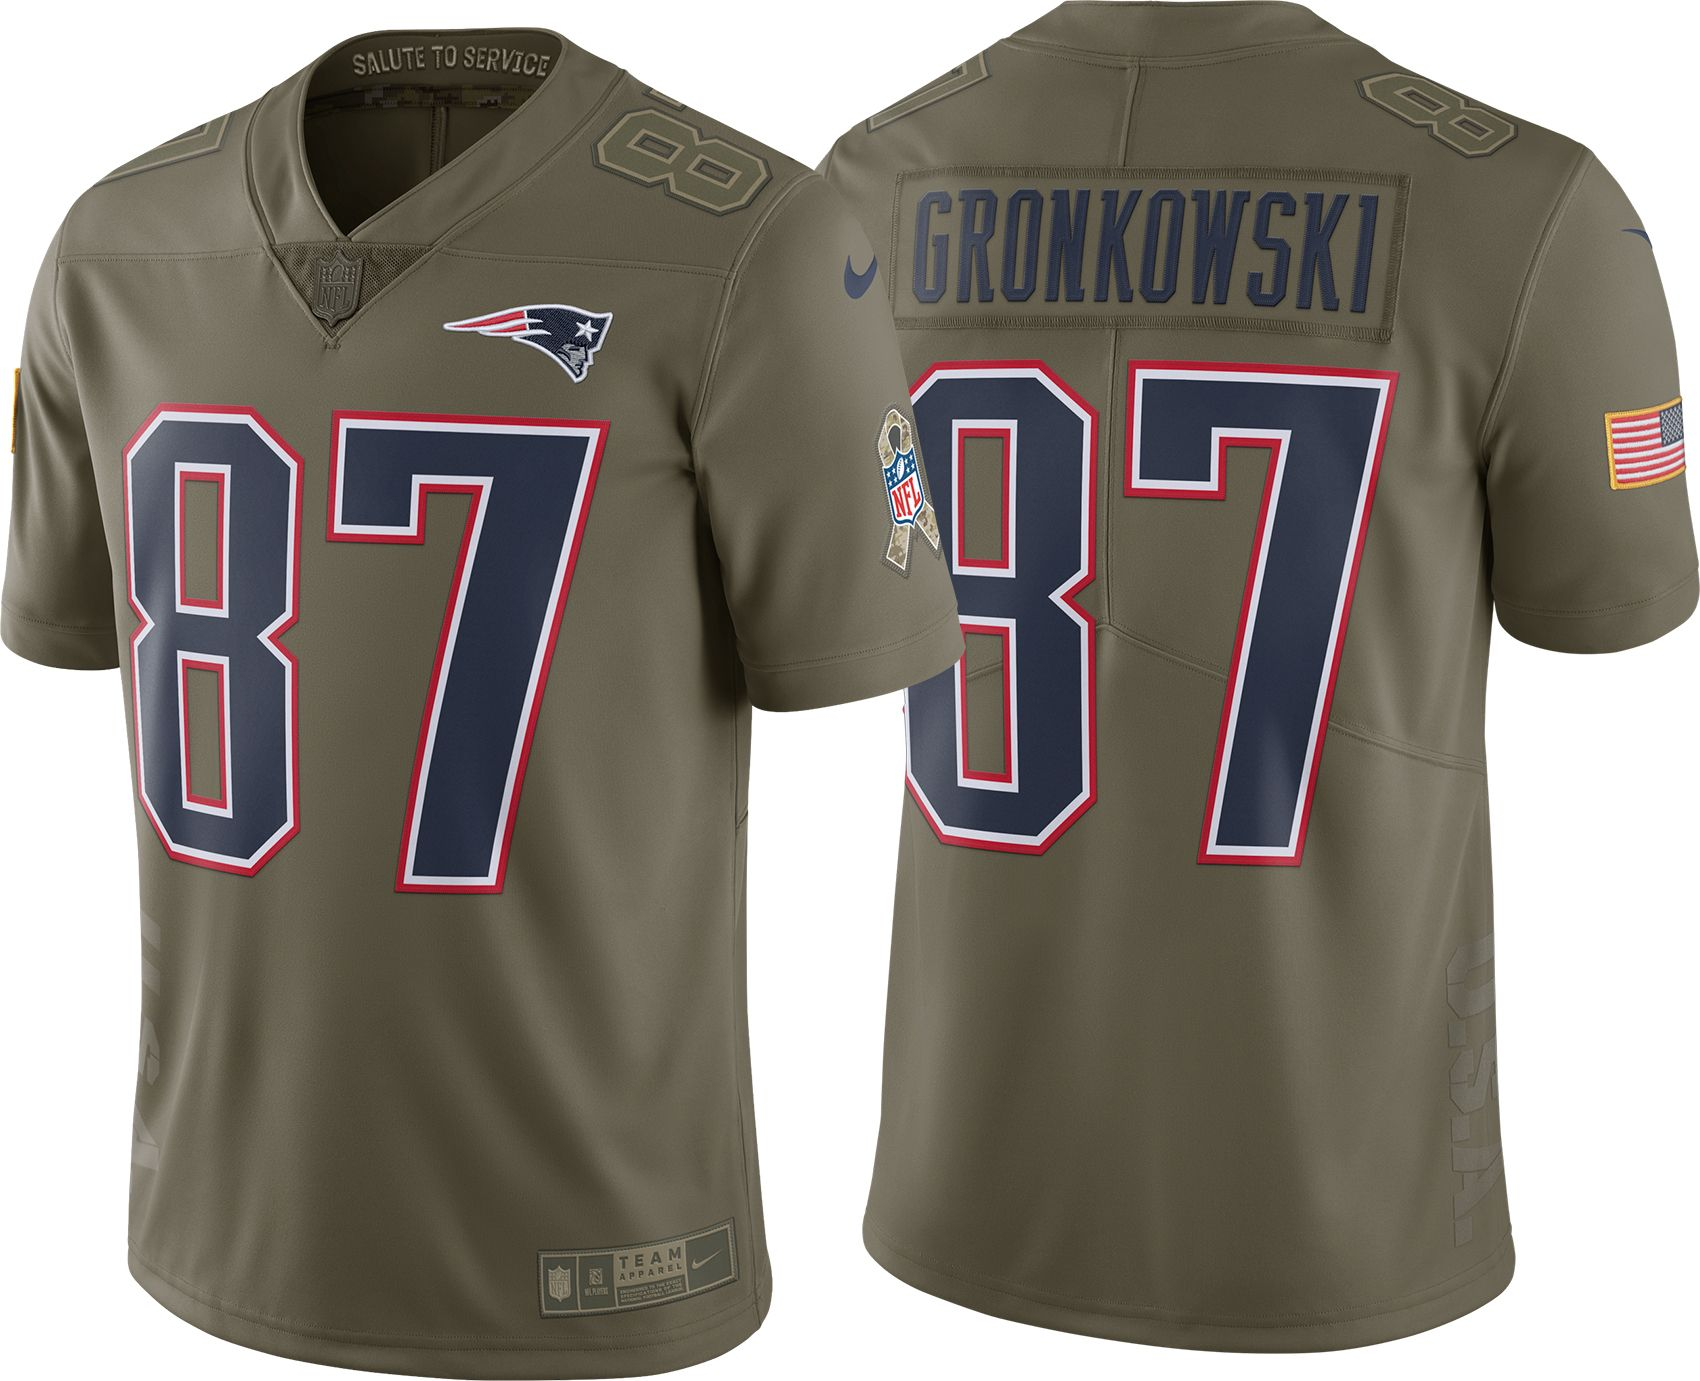 rob gronkowski jersey youth boys